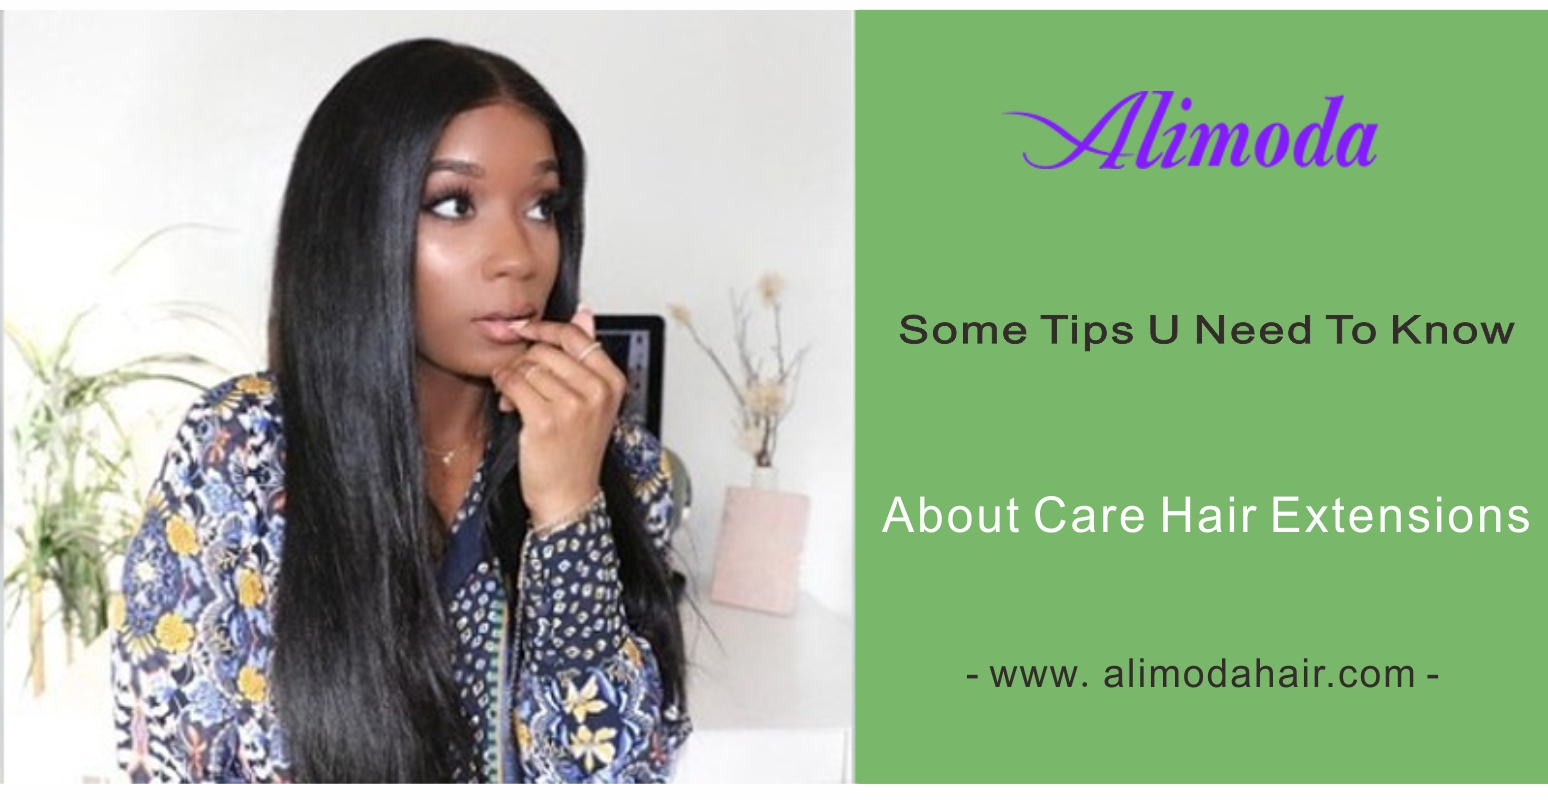 Some tips you need to know about care hair extension